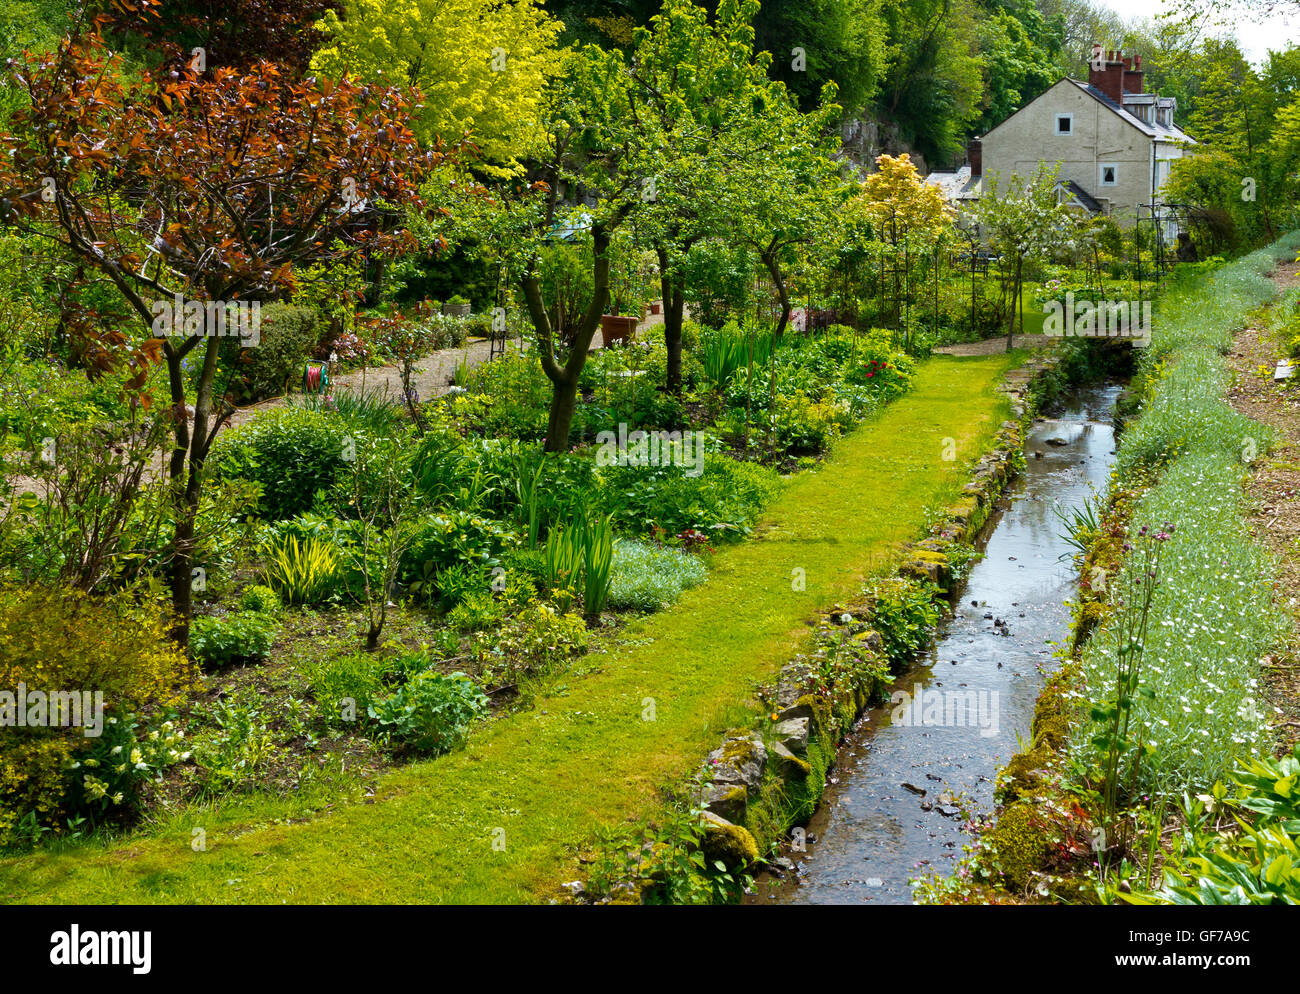 Canal in the Cascades Garden at Bonsall near Matlock in the Derbyshire Dales Peak District England UK - Stock Image